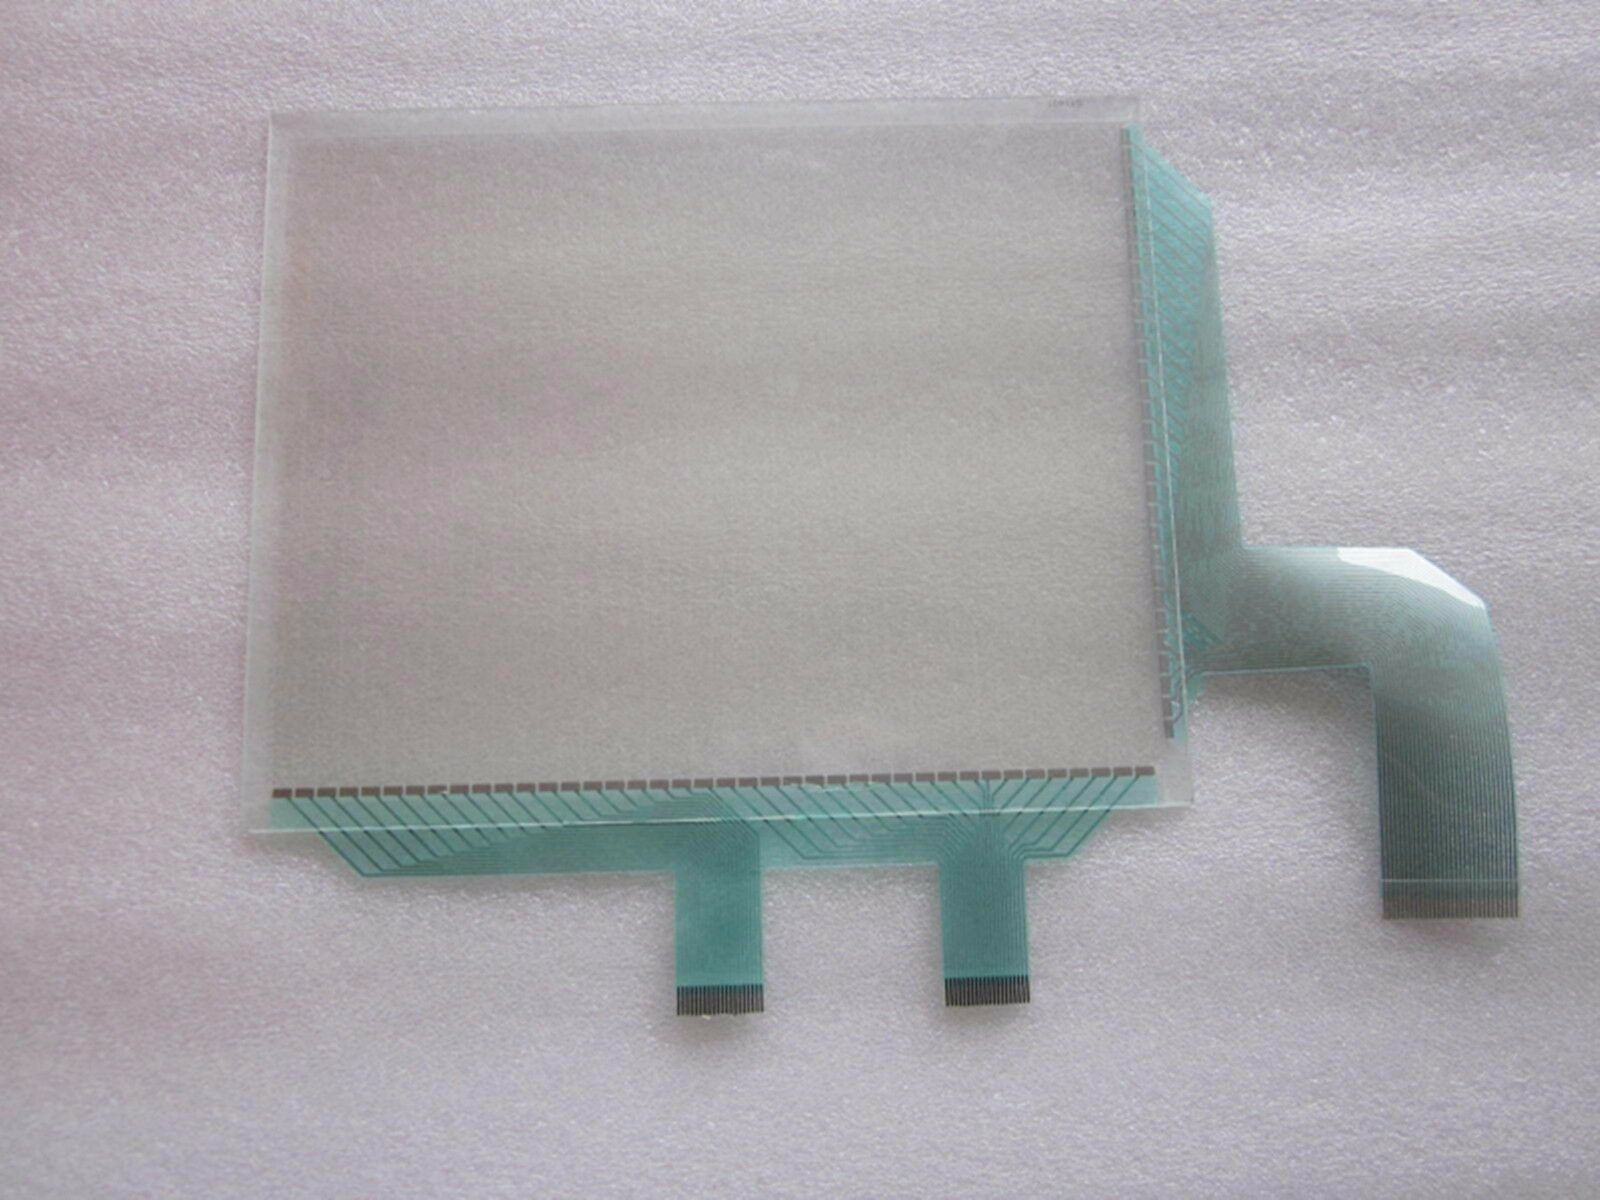 1PC New Touch Screen glass A970GOT-LBA with